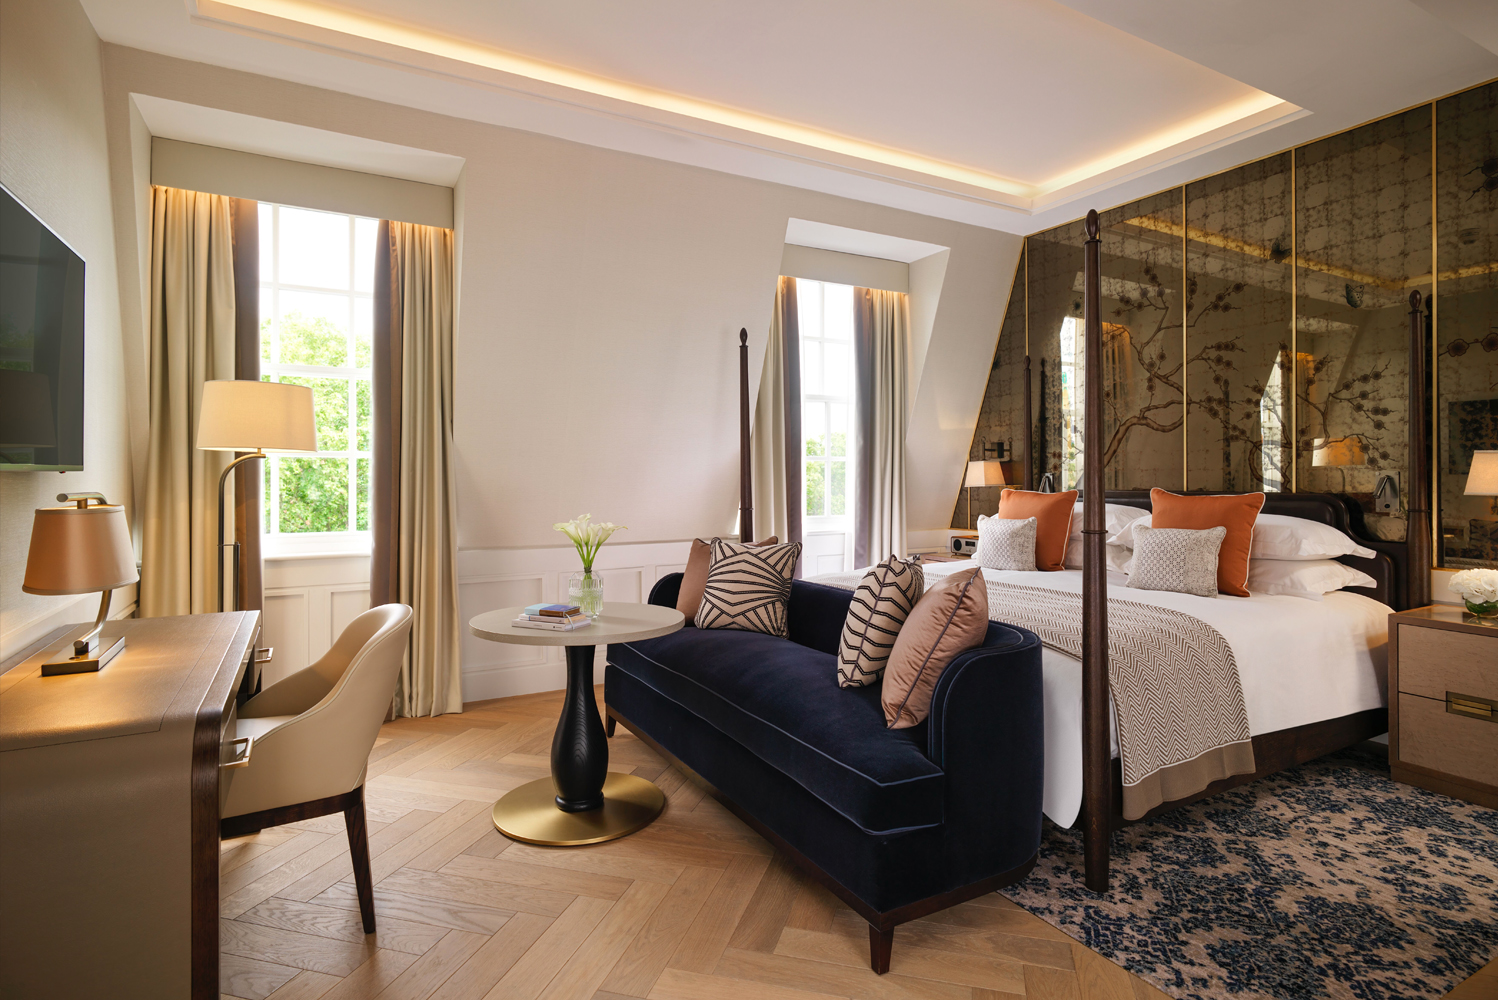 The 307-room hotel combines contemporary accommodation, views across the gardens of Grosvenor Square, and culinary concepts by Michelin Star restaurateur Jason Atherton.